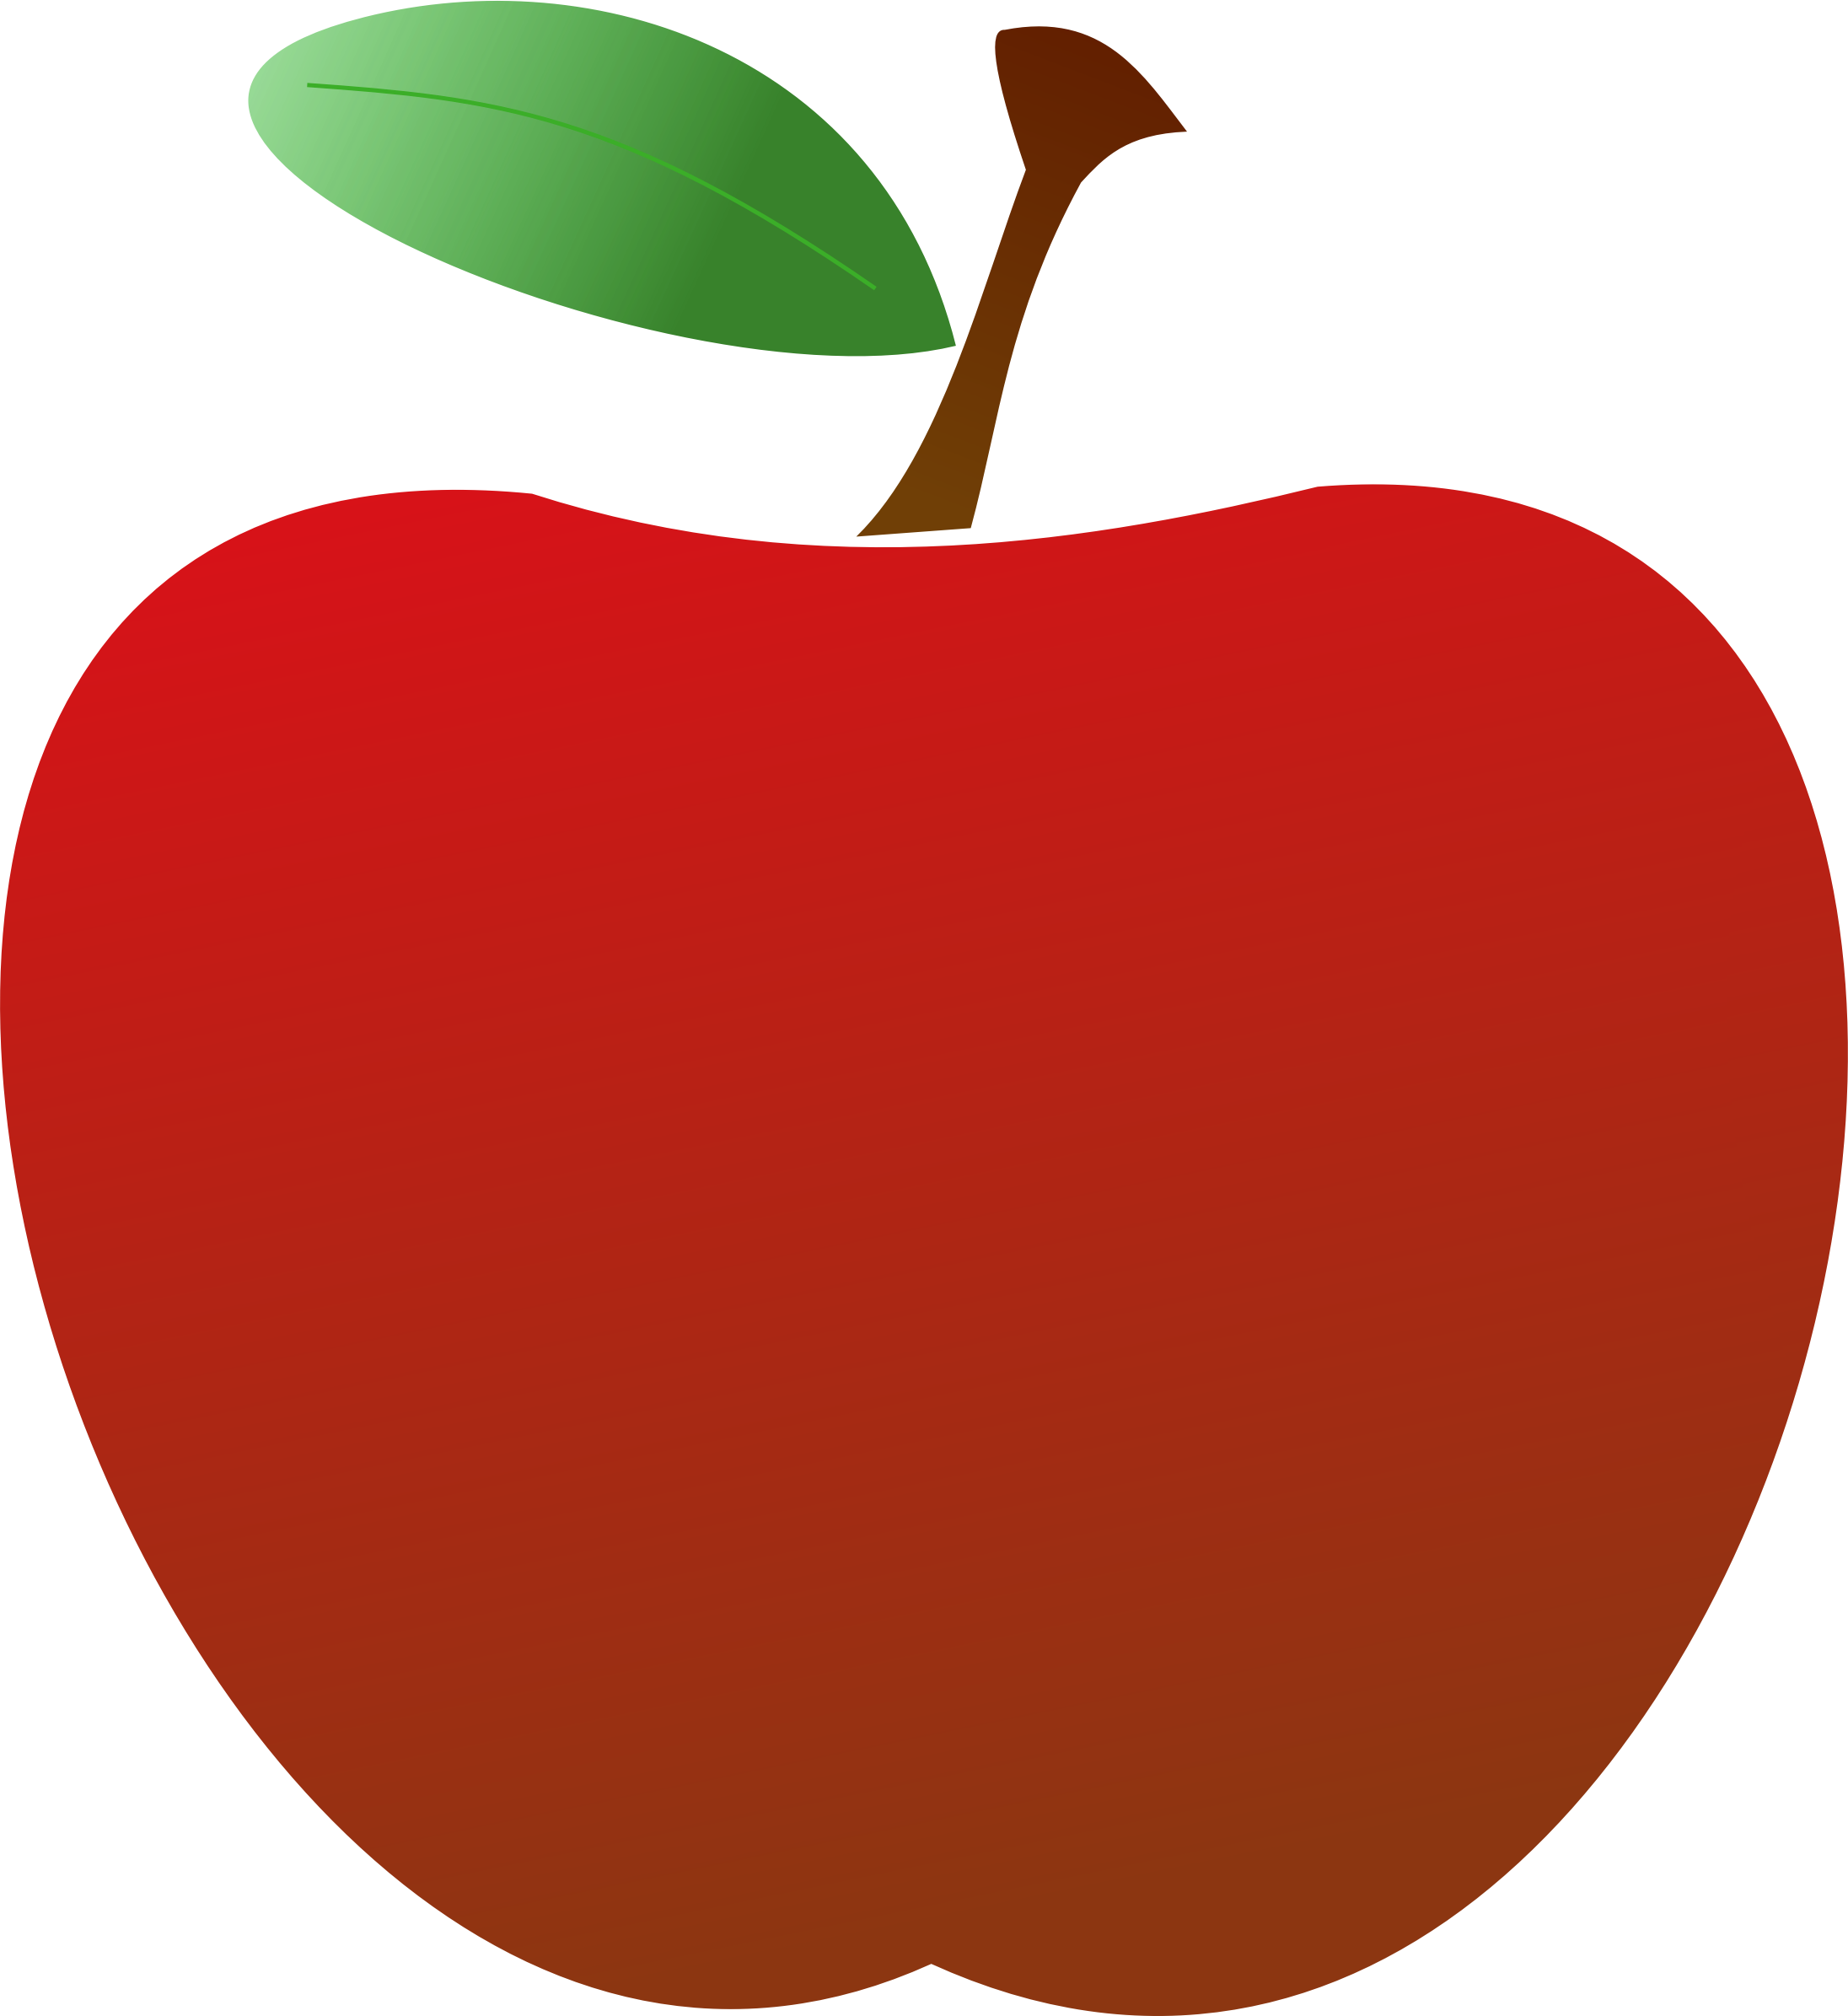 Apple in half clipart royalty free library Clipart Apple Leaf - gucciguanfangwang.me royalty free library